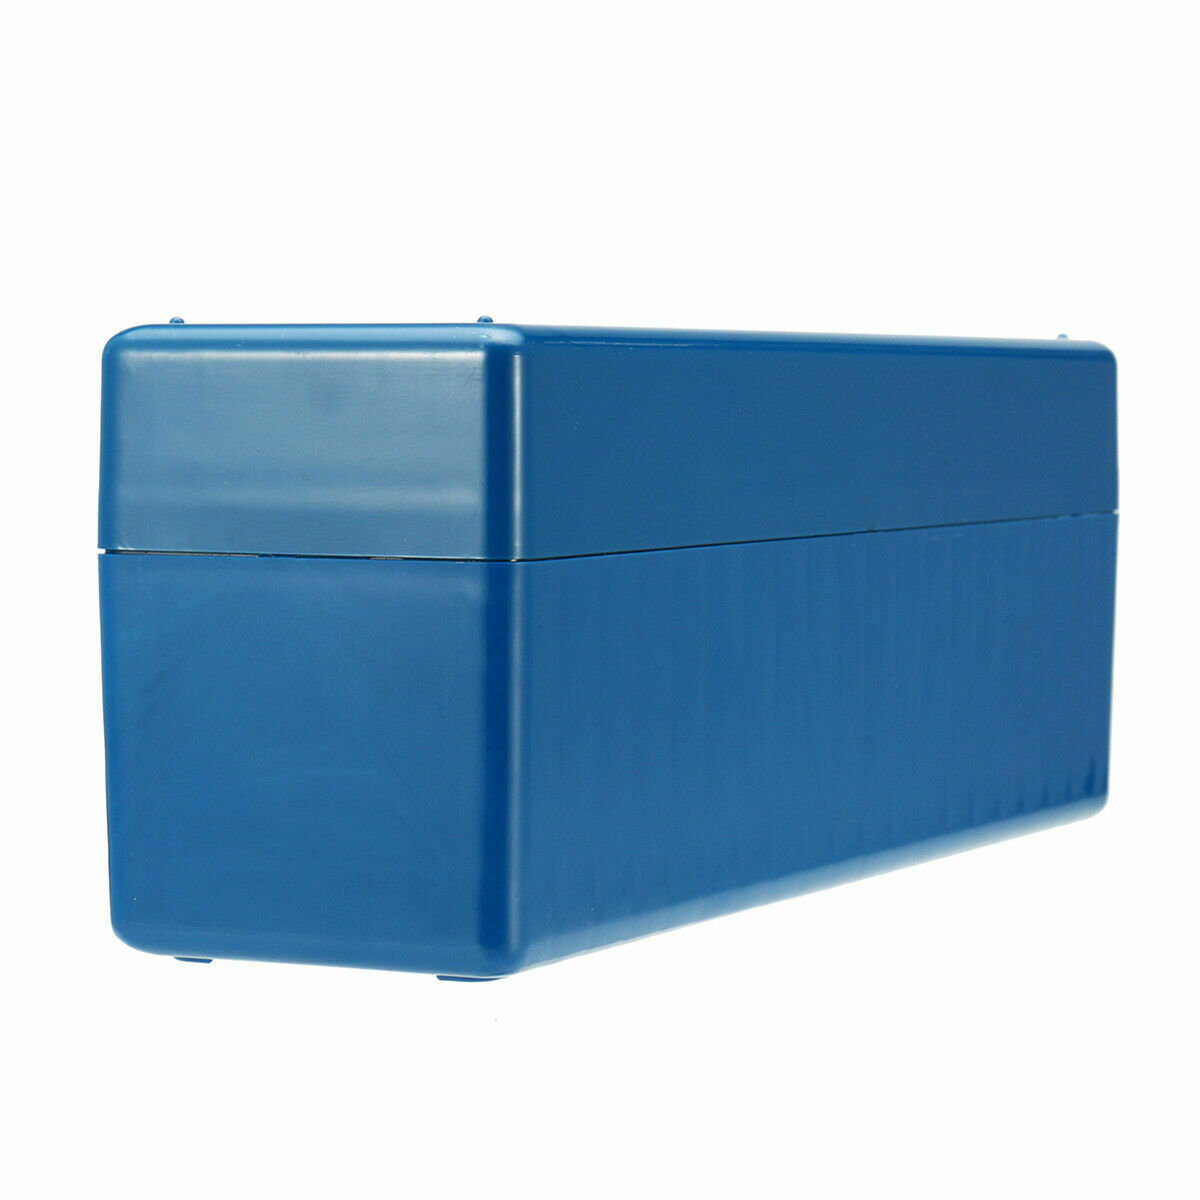 25x9x7cm Blue Storage Tool Box Case Holds 20 Individual Certified PCGS NGC ICG image 3